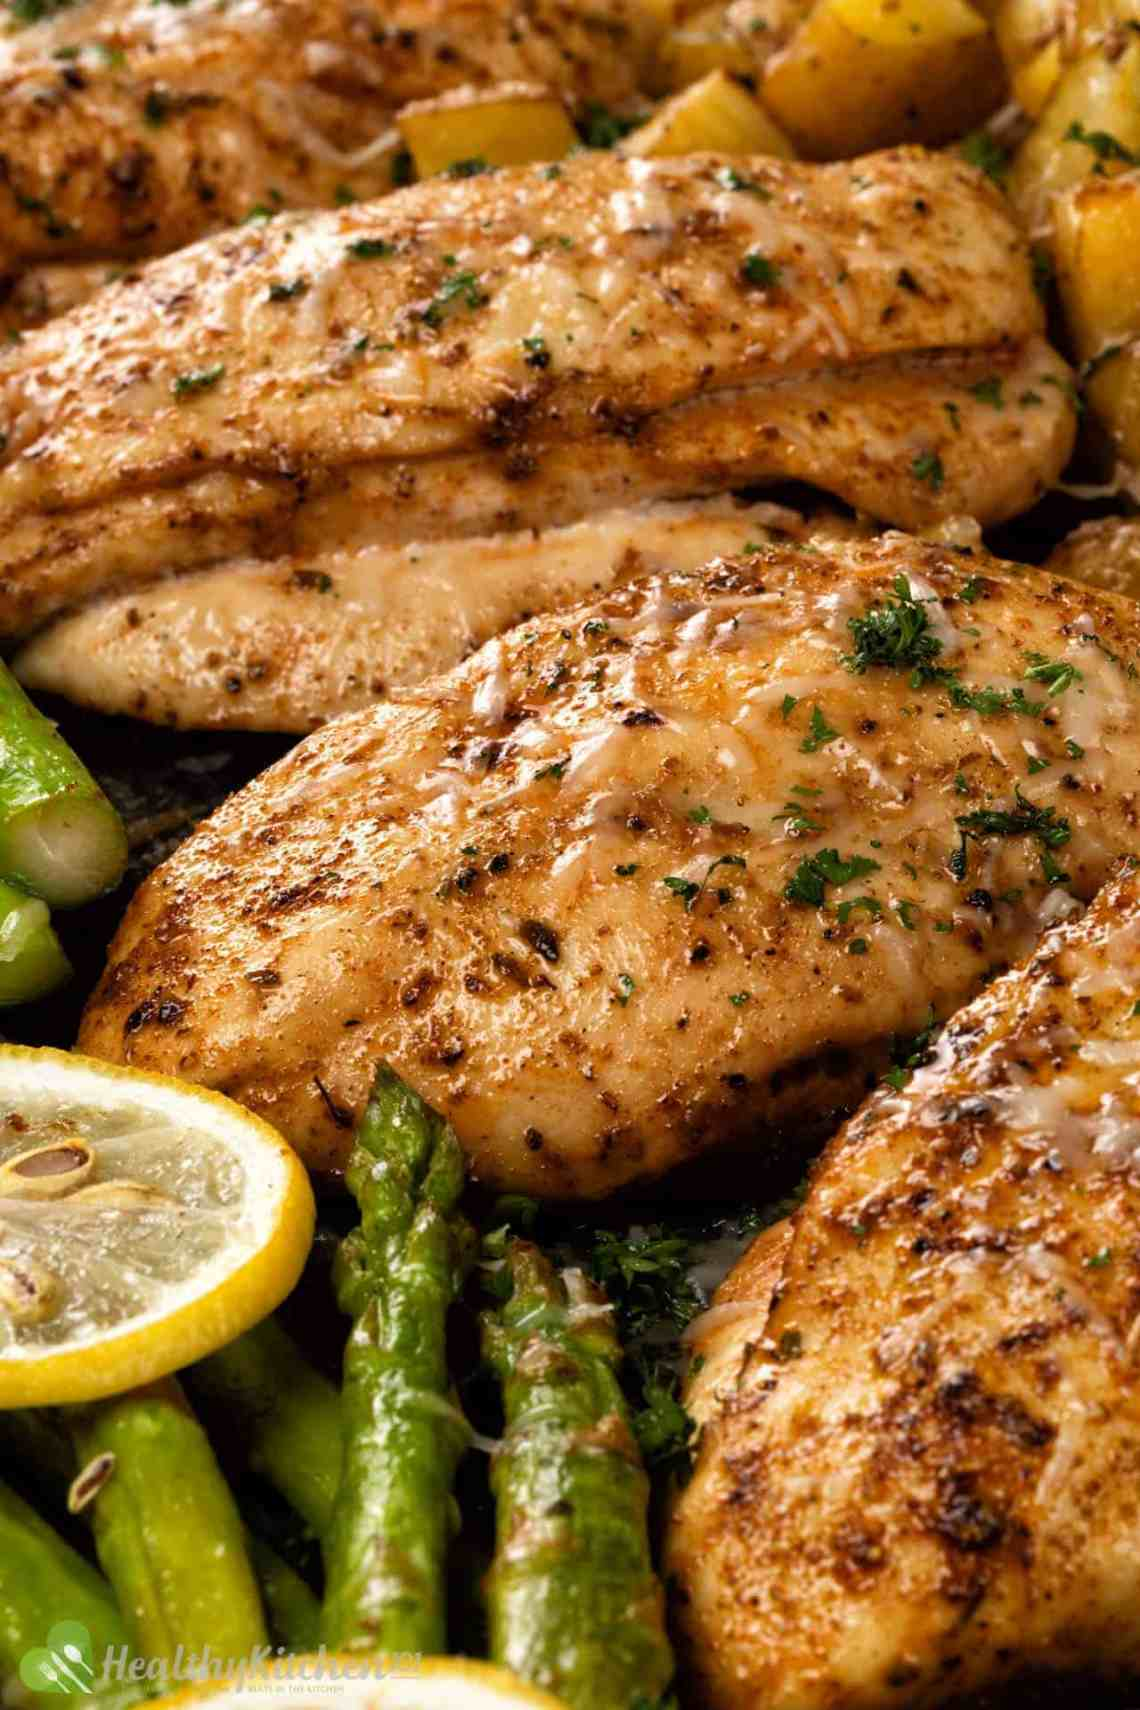 Oven-Roasted Chicken Breast - The Healthy Skeptics